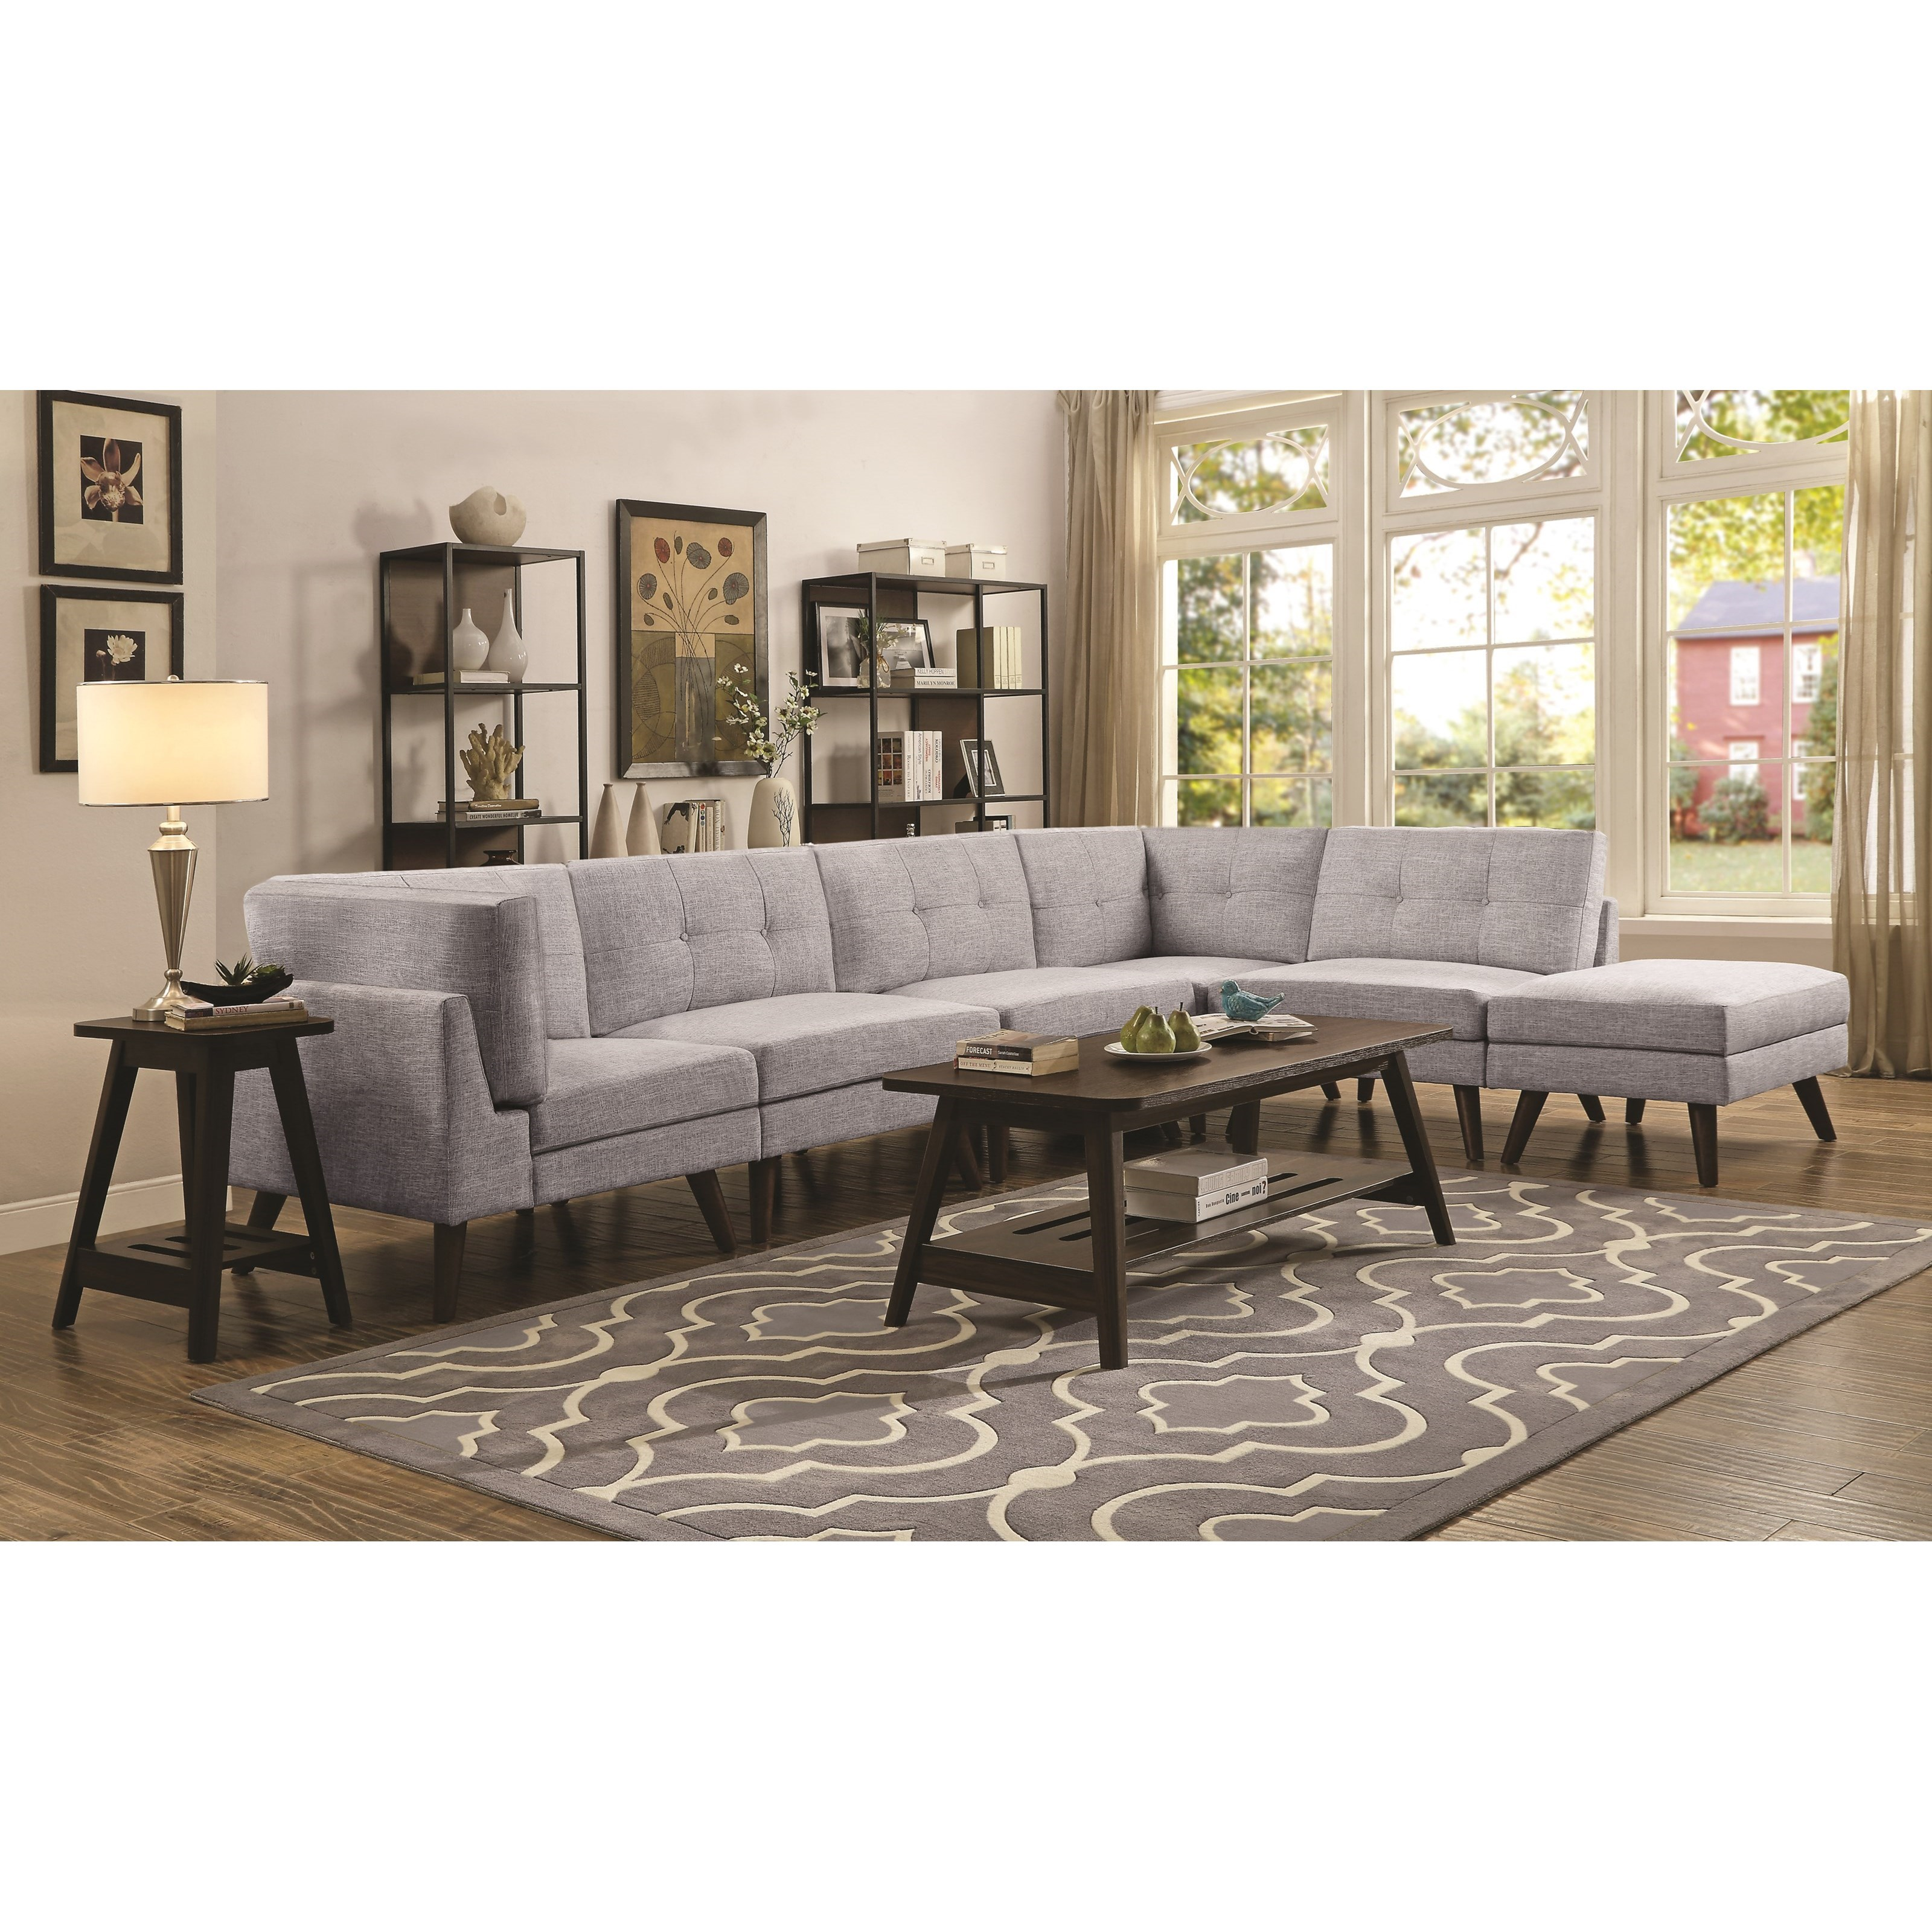 Churchill 4 Seat Sectional